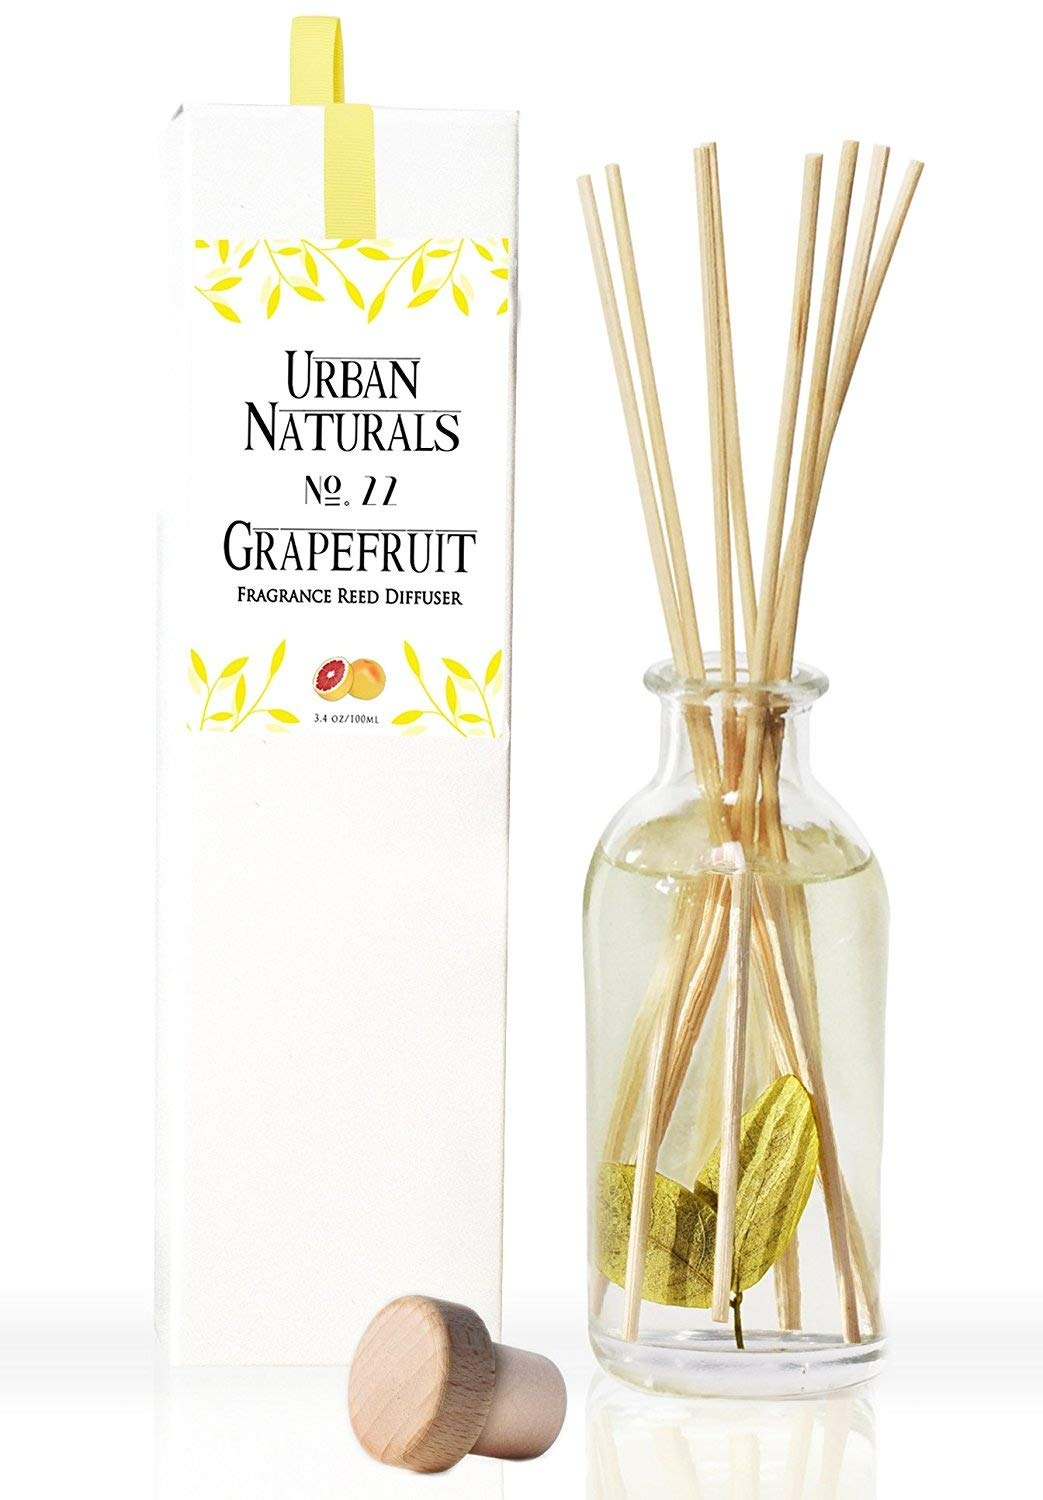 Grapefruit Scented Oil Reed Diffuser Set Fresh Citrus Fragrance Aromatherapy Oil Urban Naturals Bergamot Essential Oil & Green Nuances Great Gift Idea Made in the USA B06XX19JLL